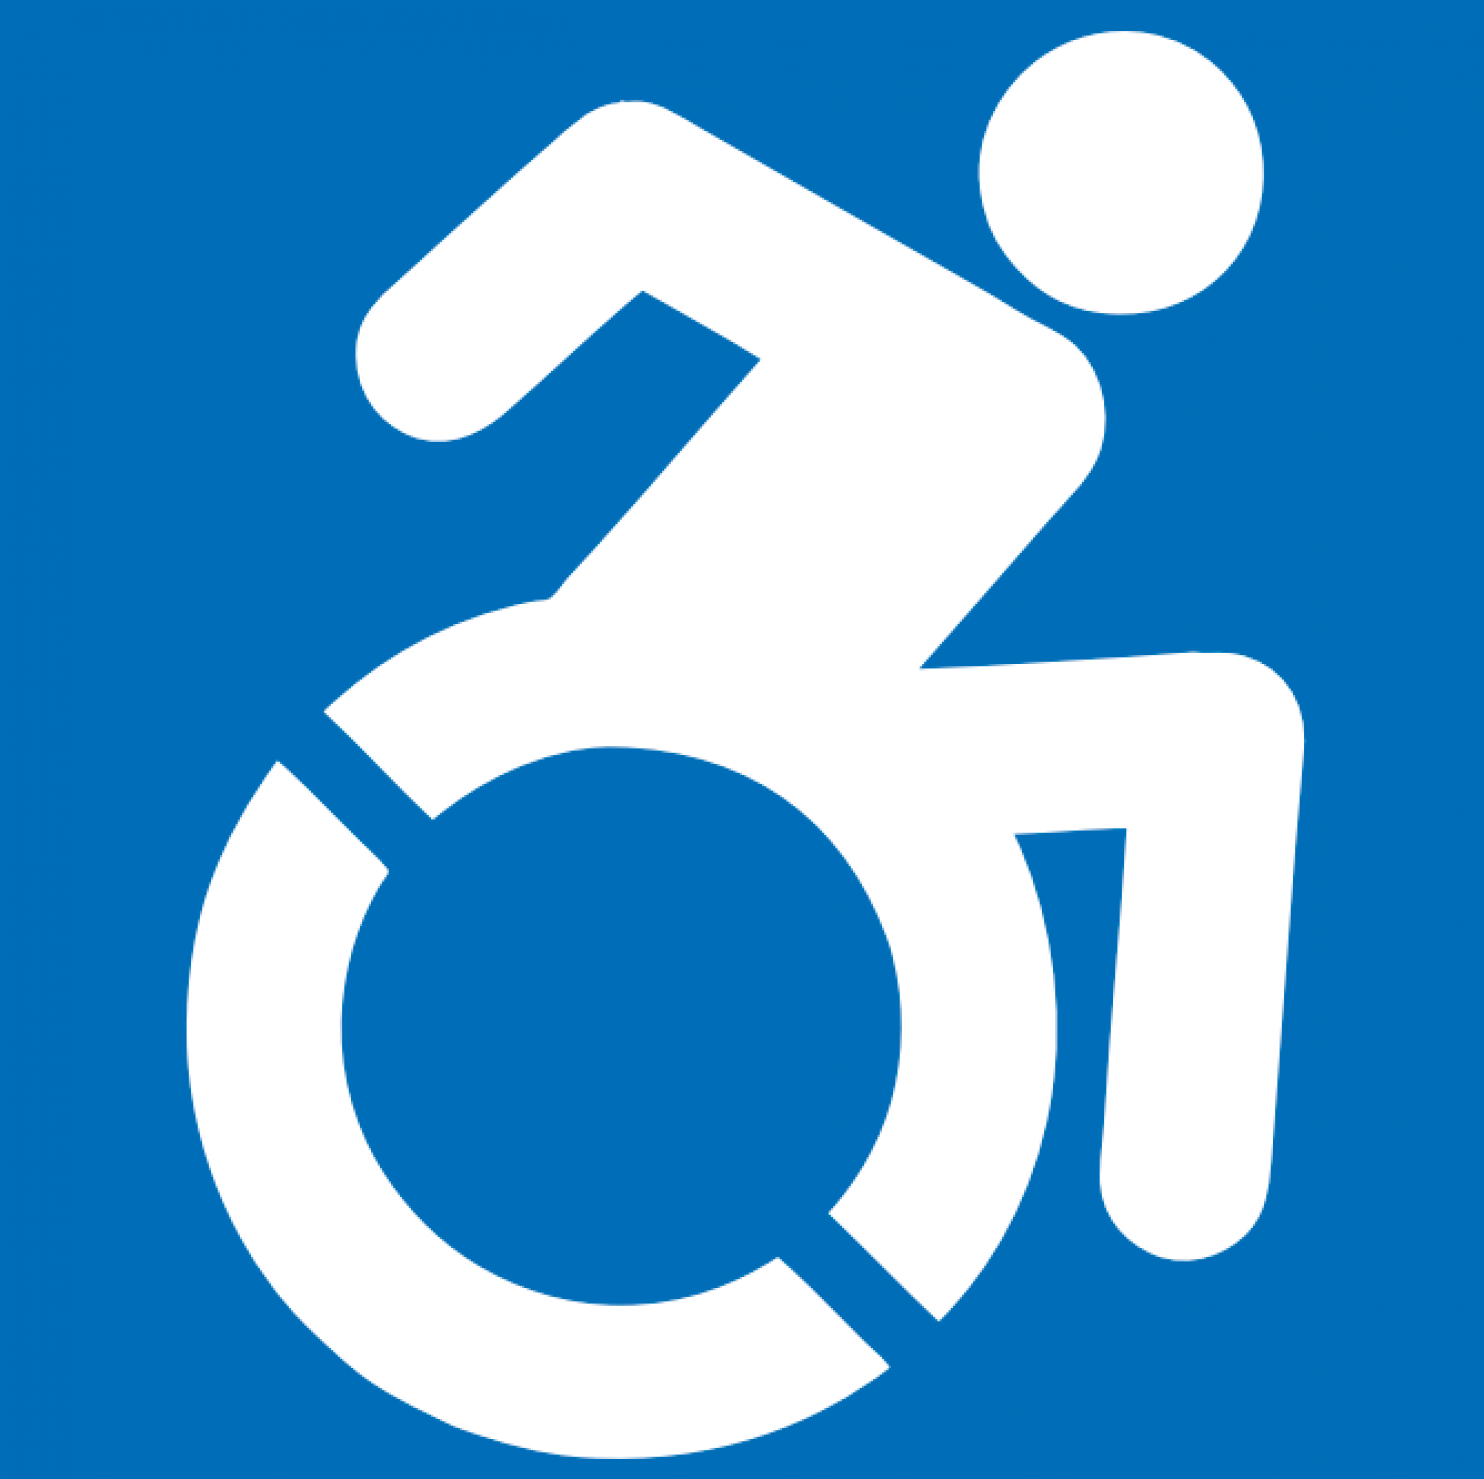 The handicap symbol gets an update at least in new york state the handicap symbol gets an update at least in new york state the washington buycottarizona Image collections